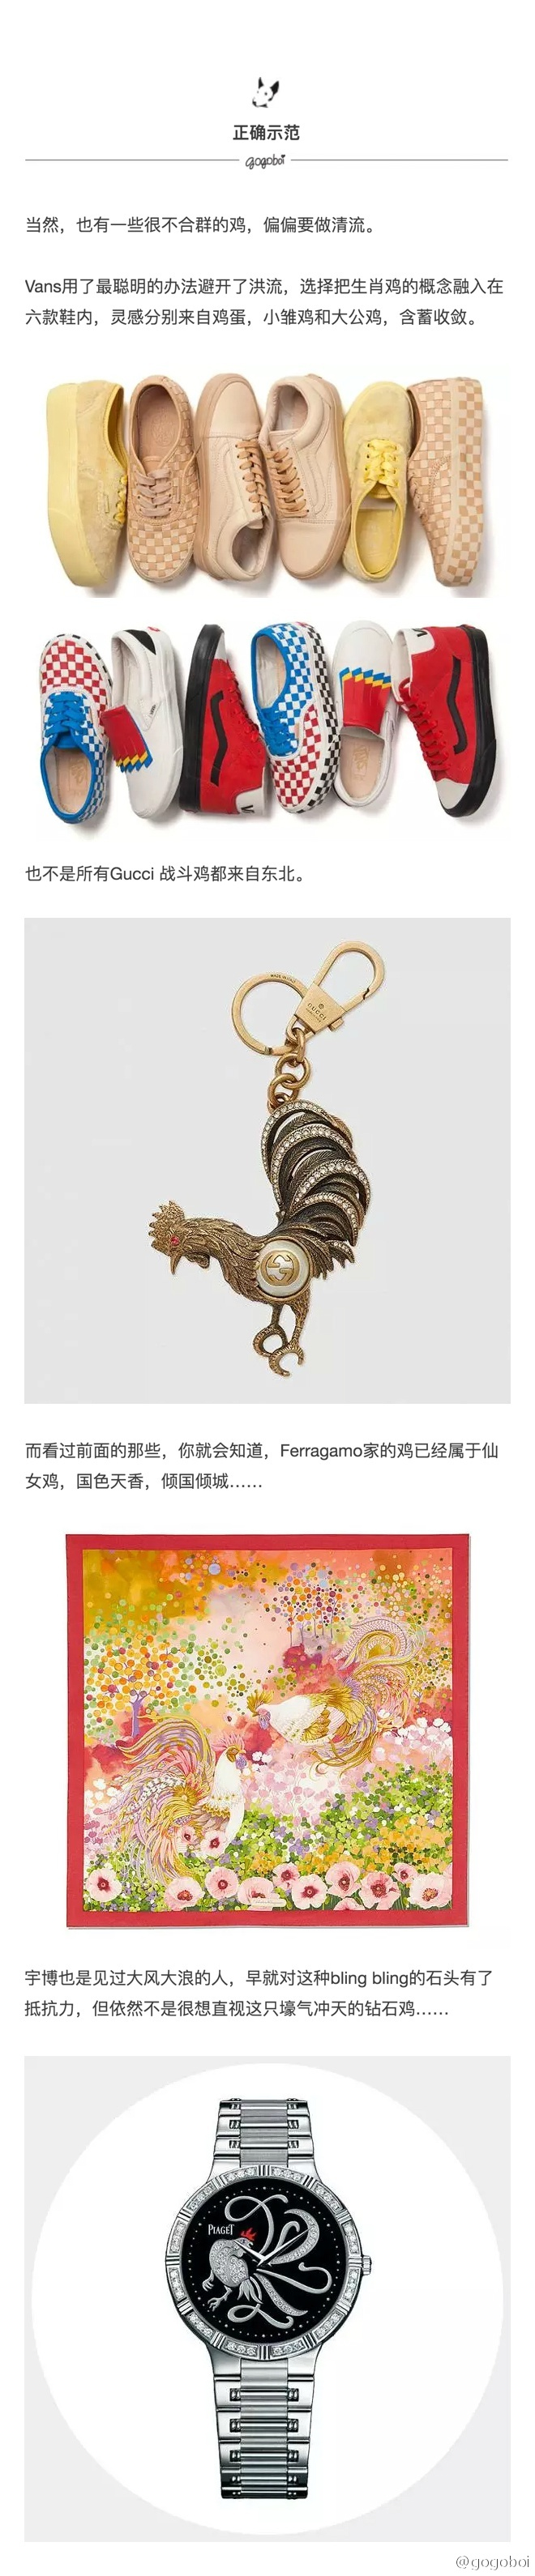 year of chicken limited edition products image source: gogoboi weibo http://photo.weibo.com/1706372681/wbphotos/large/mid/4056914830138197/pid/65b52e49gw1fb43cadyvfj20ic2gcwru